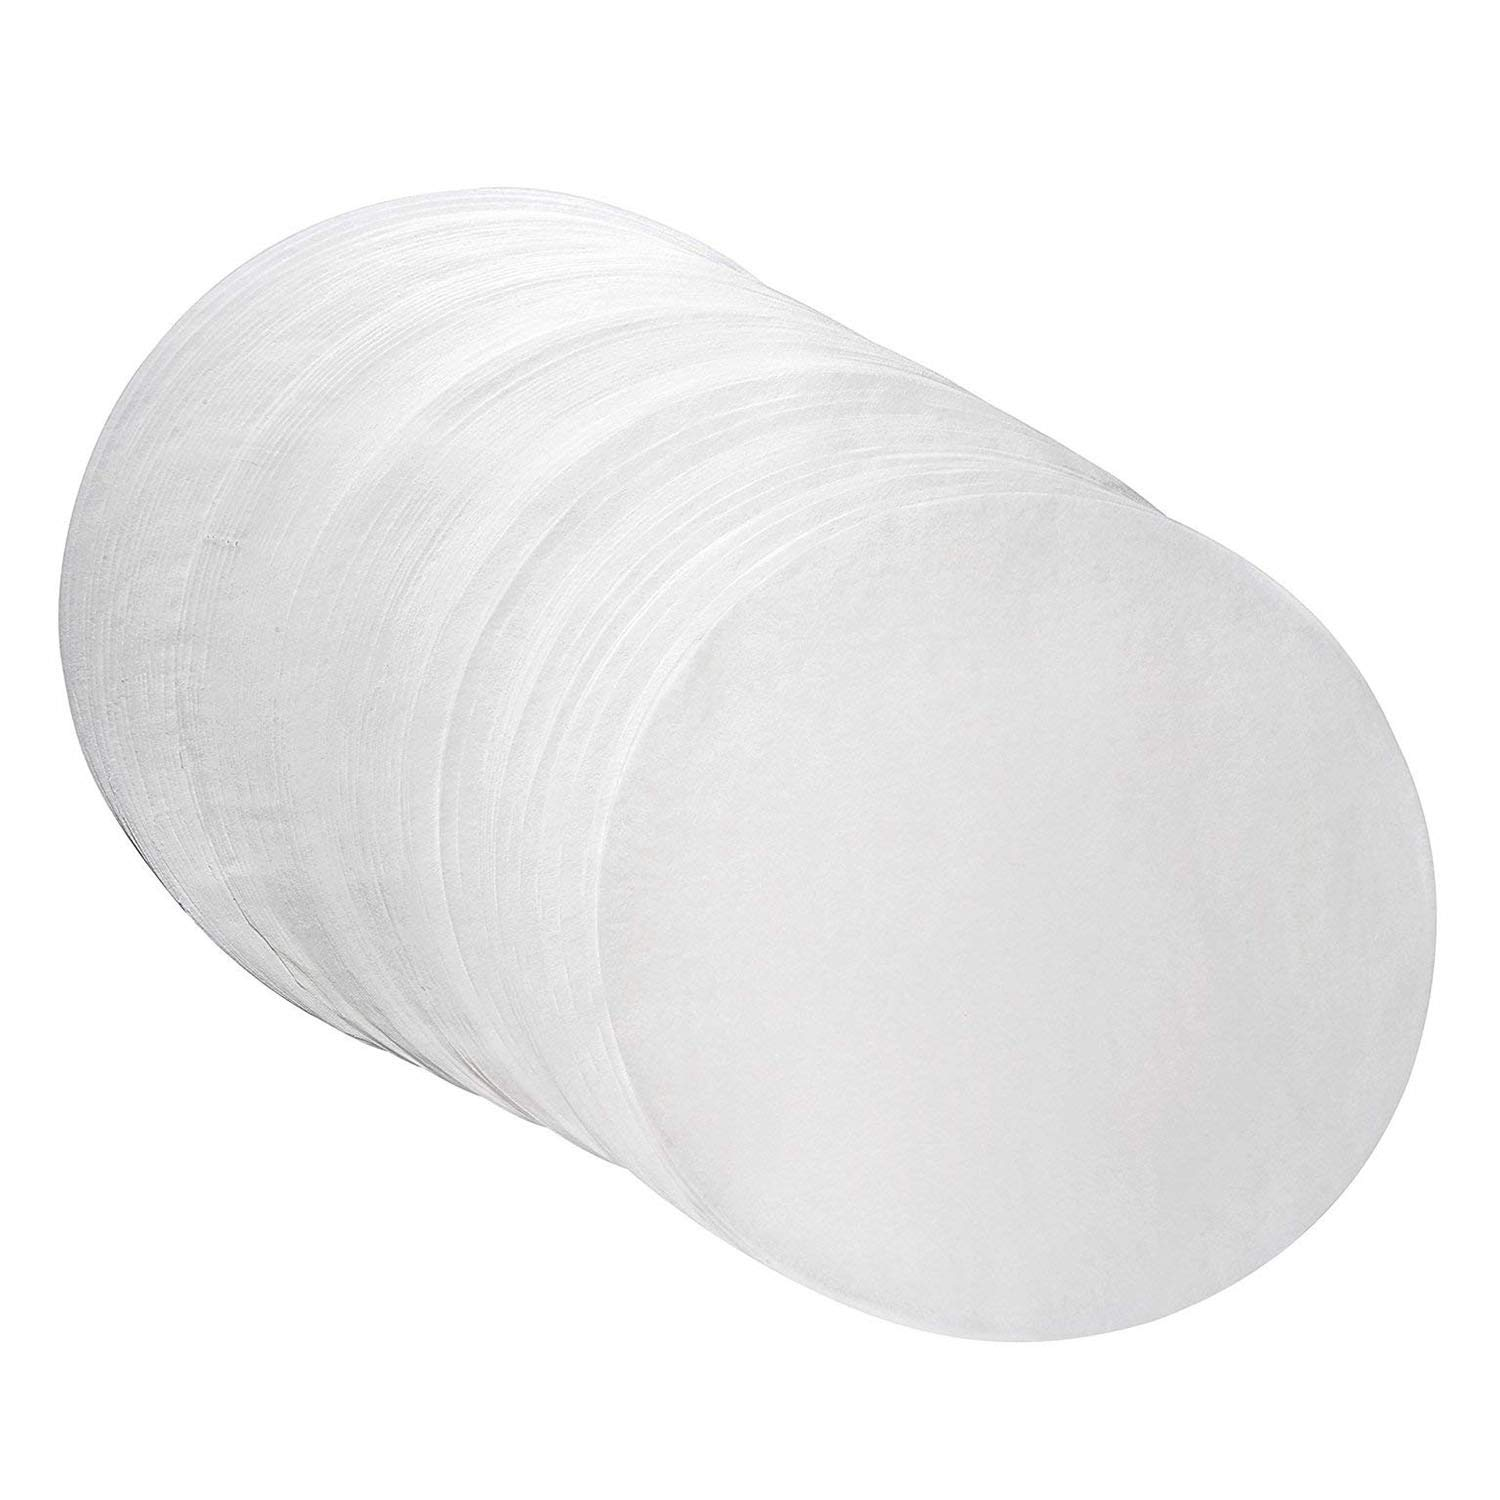 Oasis Supply Round Dry Wax Parchment Pan Liners for Cake Baking, Deep Dish Pizza, and Cheesecakes, White, 12 Inch Round, 1000 Count by Oasis Supply